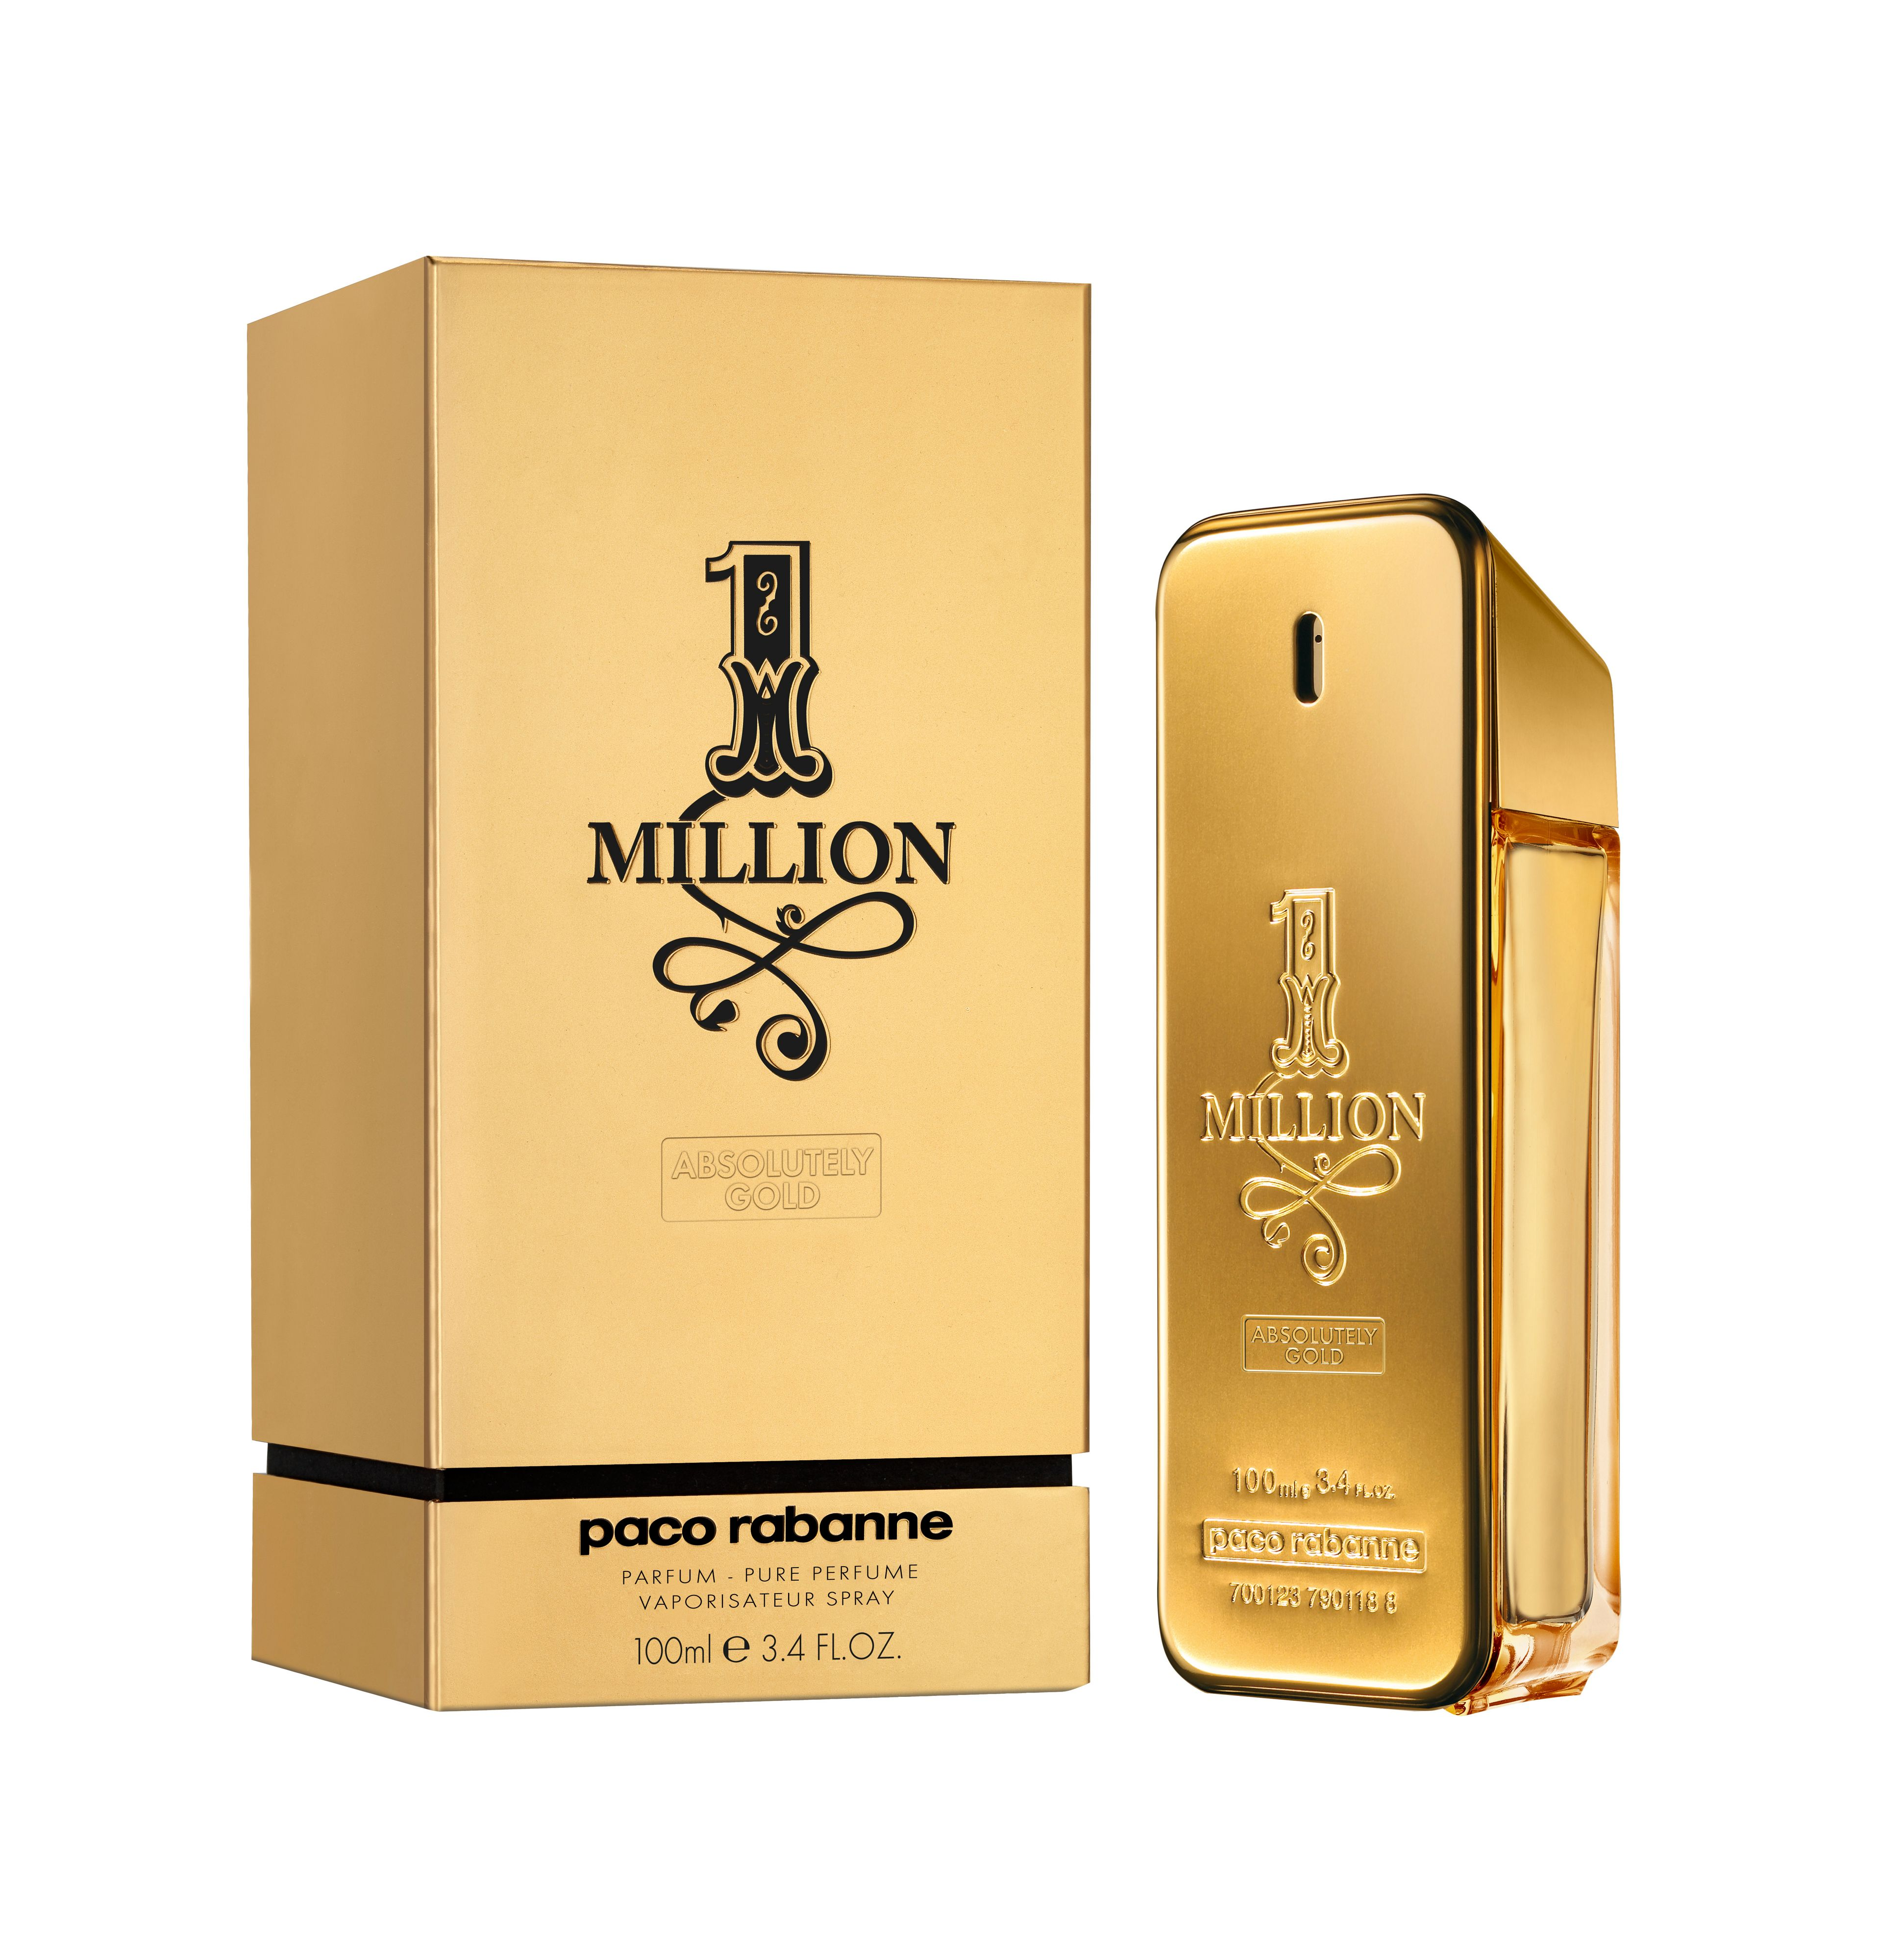 1 Million Absolutely Gold Eau de Parfum 100ml